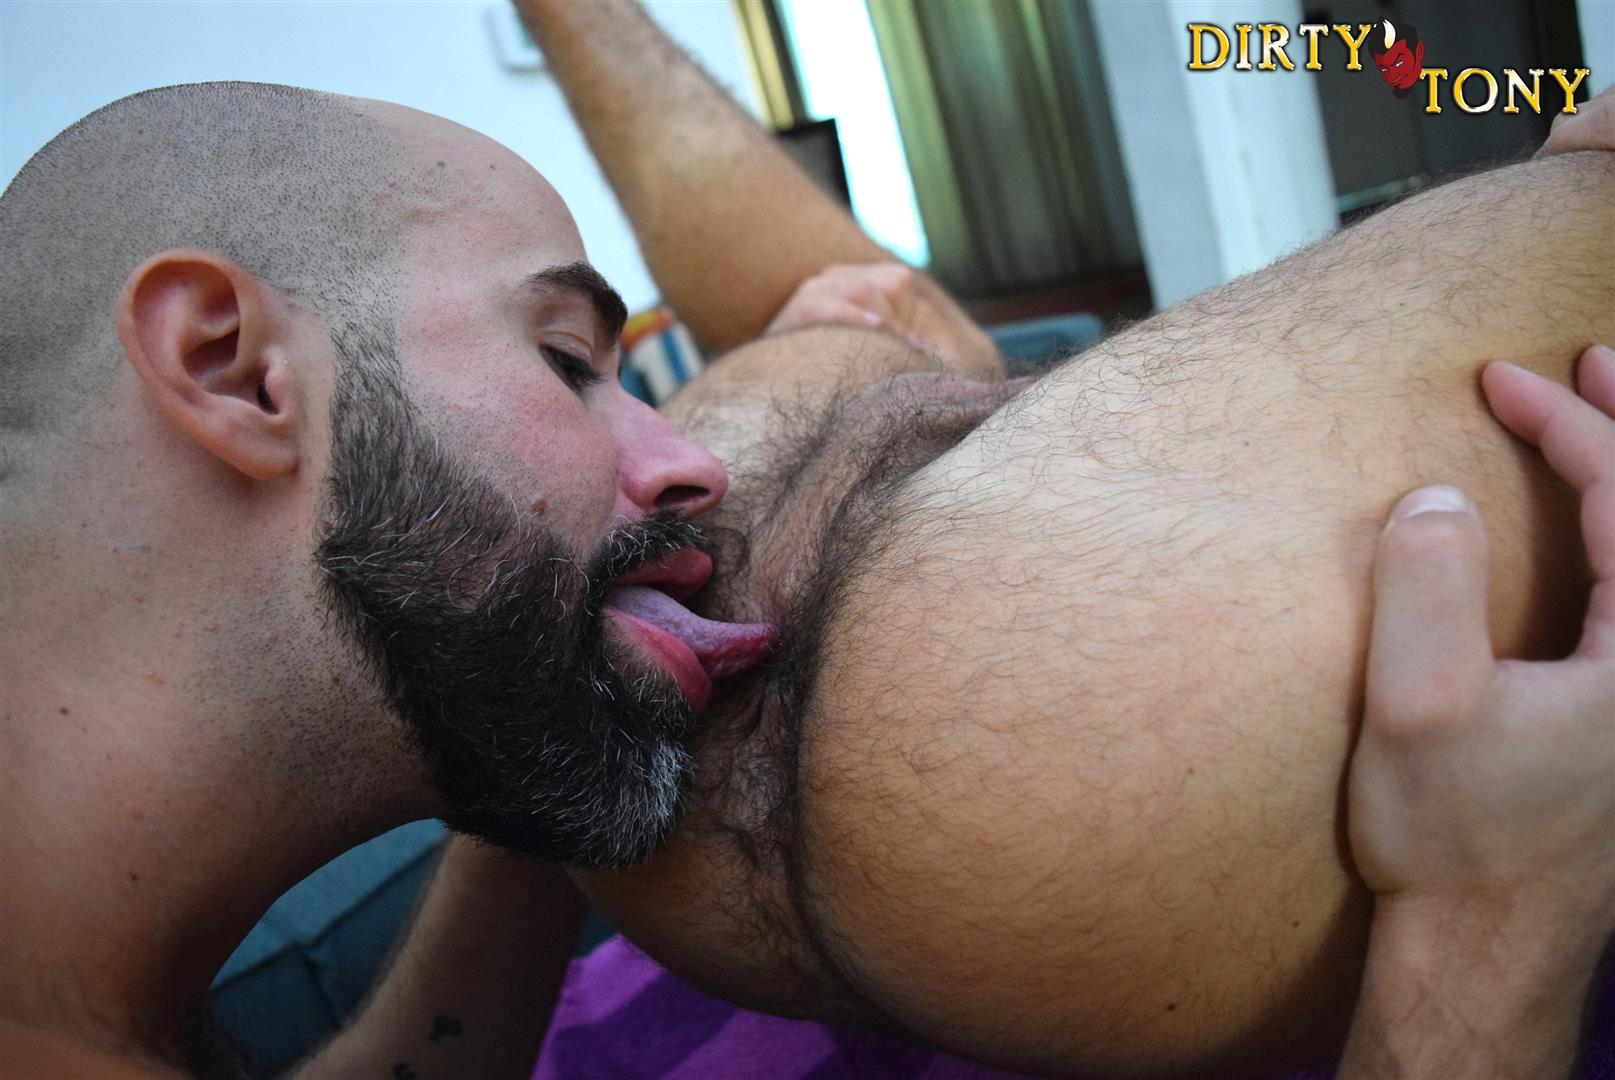 Dirty-Tony-Damon-Andros-and-Aarin-Asker-Bareback-Sex-Video-Amateur-Gay-Porn-03 Damon Andros Dominating Sub Aarin Asker Bareback